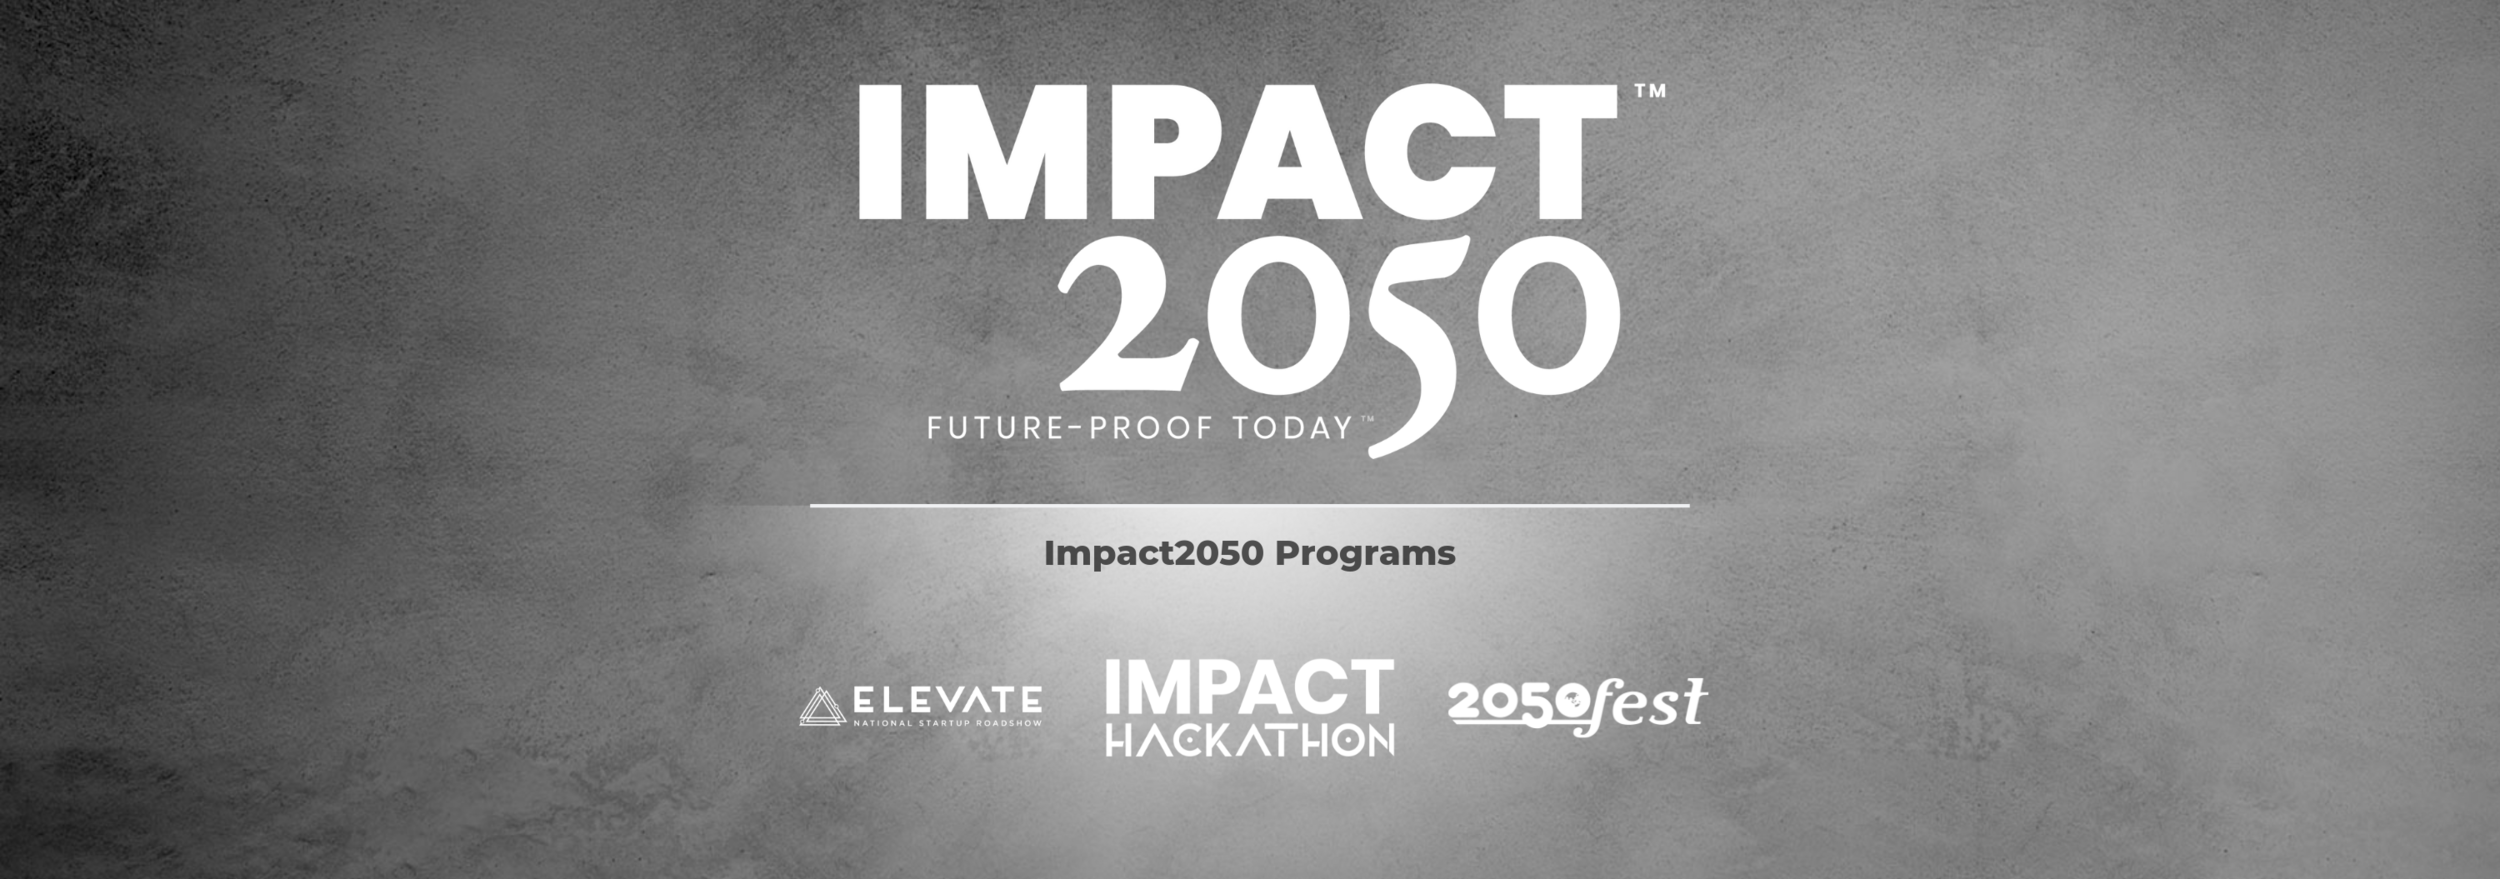 Impact 2050 Programs Explanation-7.png